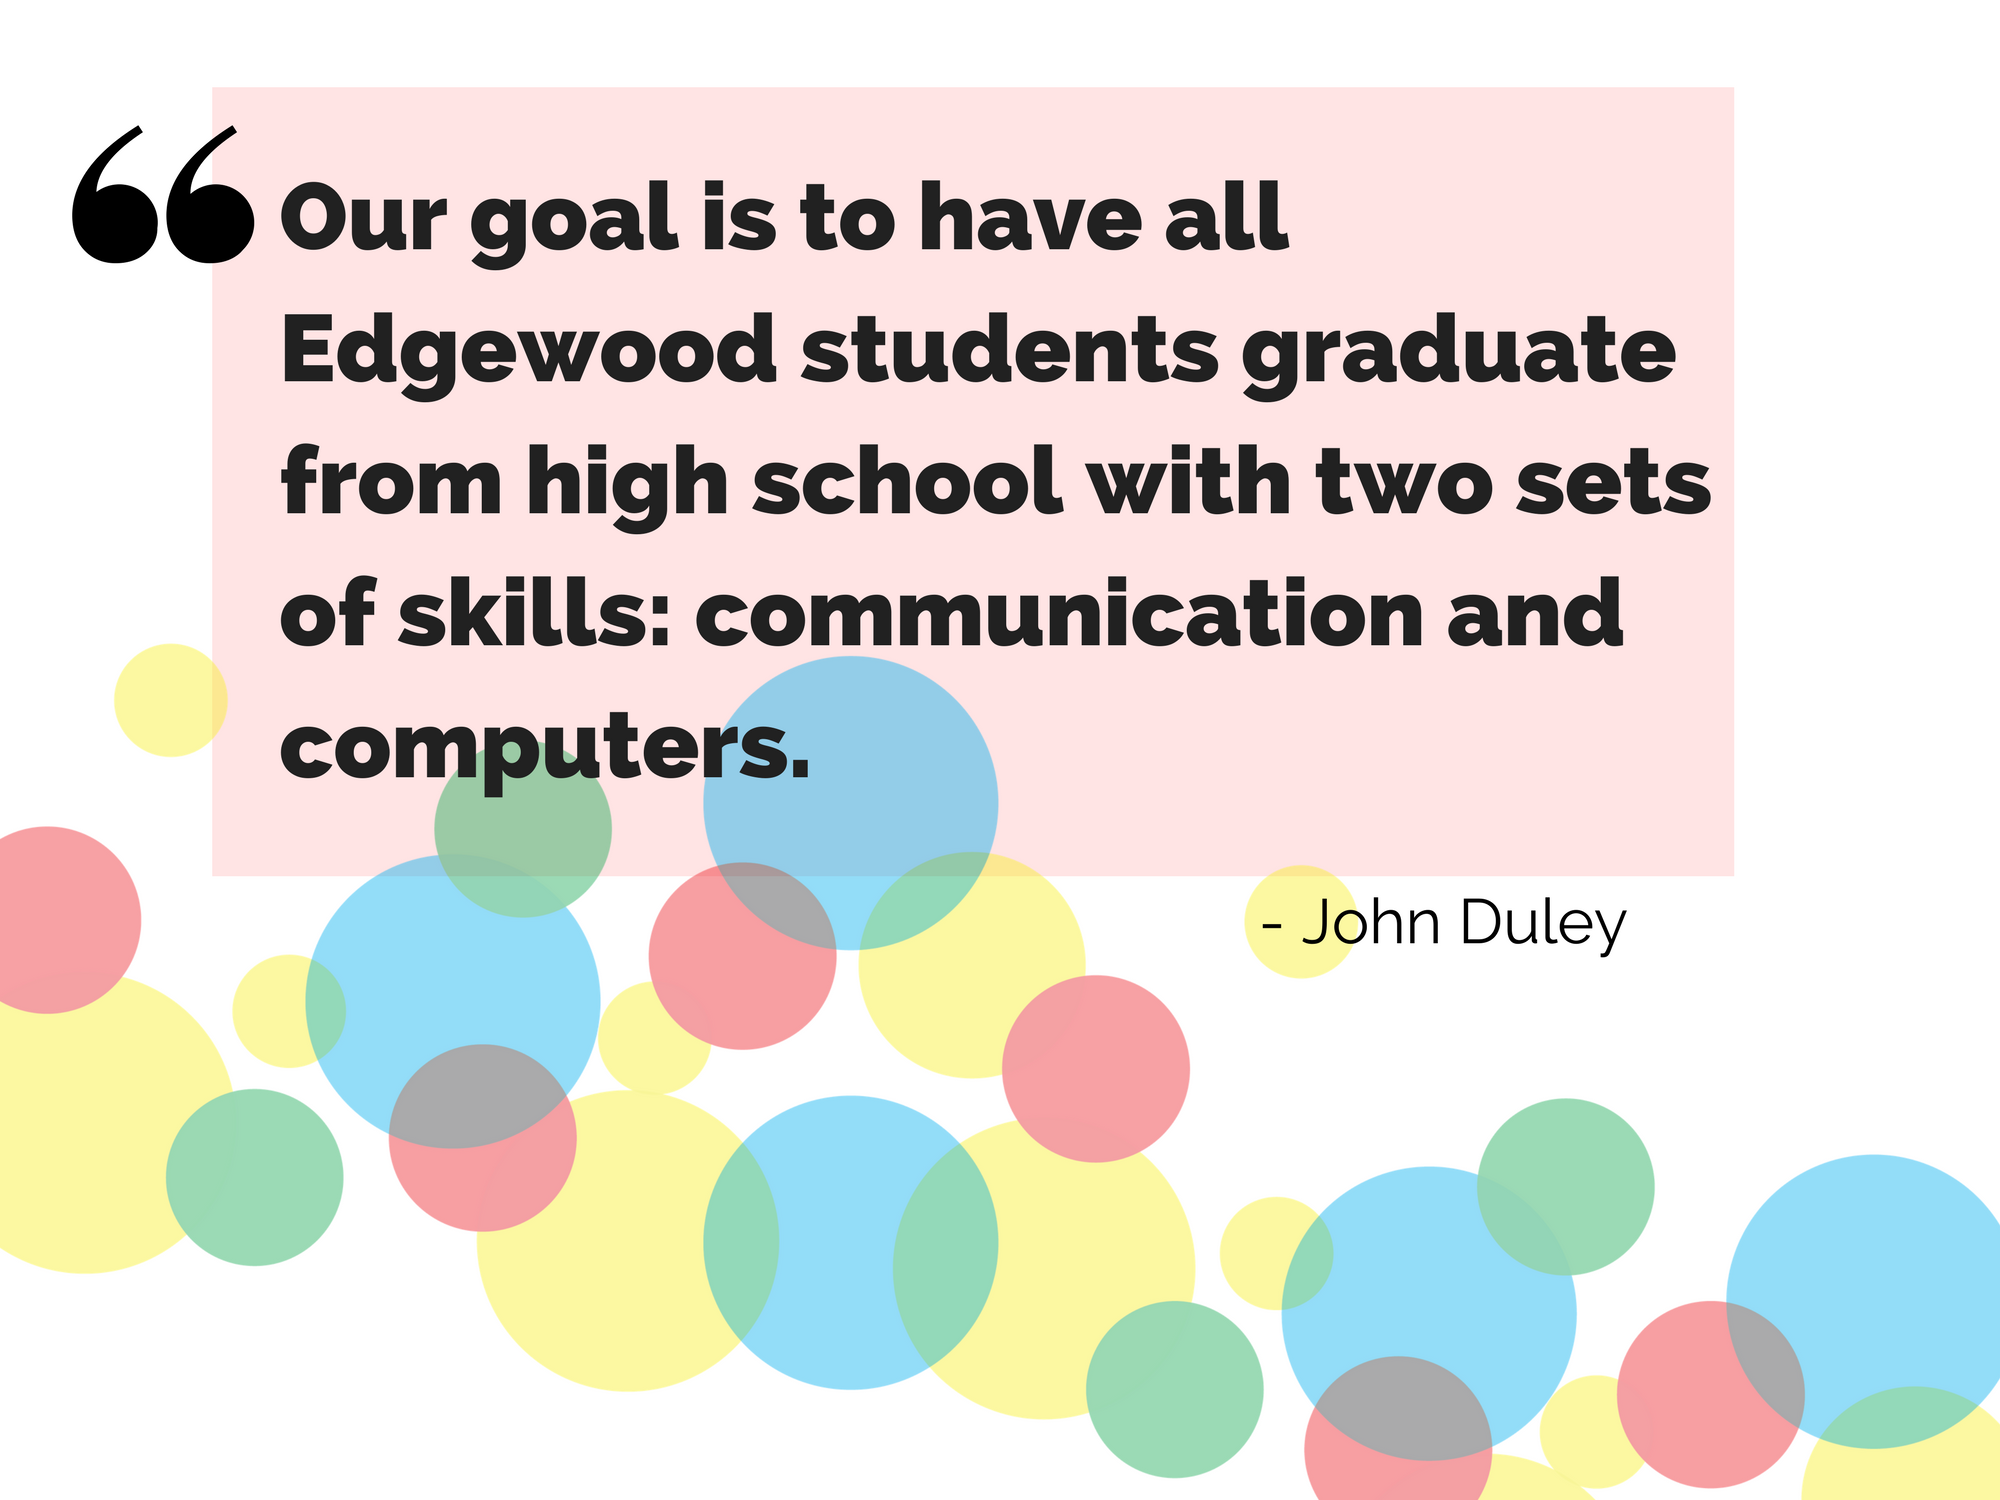 """Our goal is to have all Edgewood students graduate from high school with two sets of skills: communication and computers."" - John Duley"